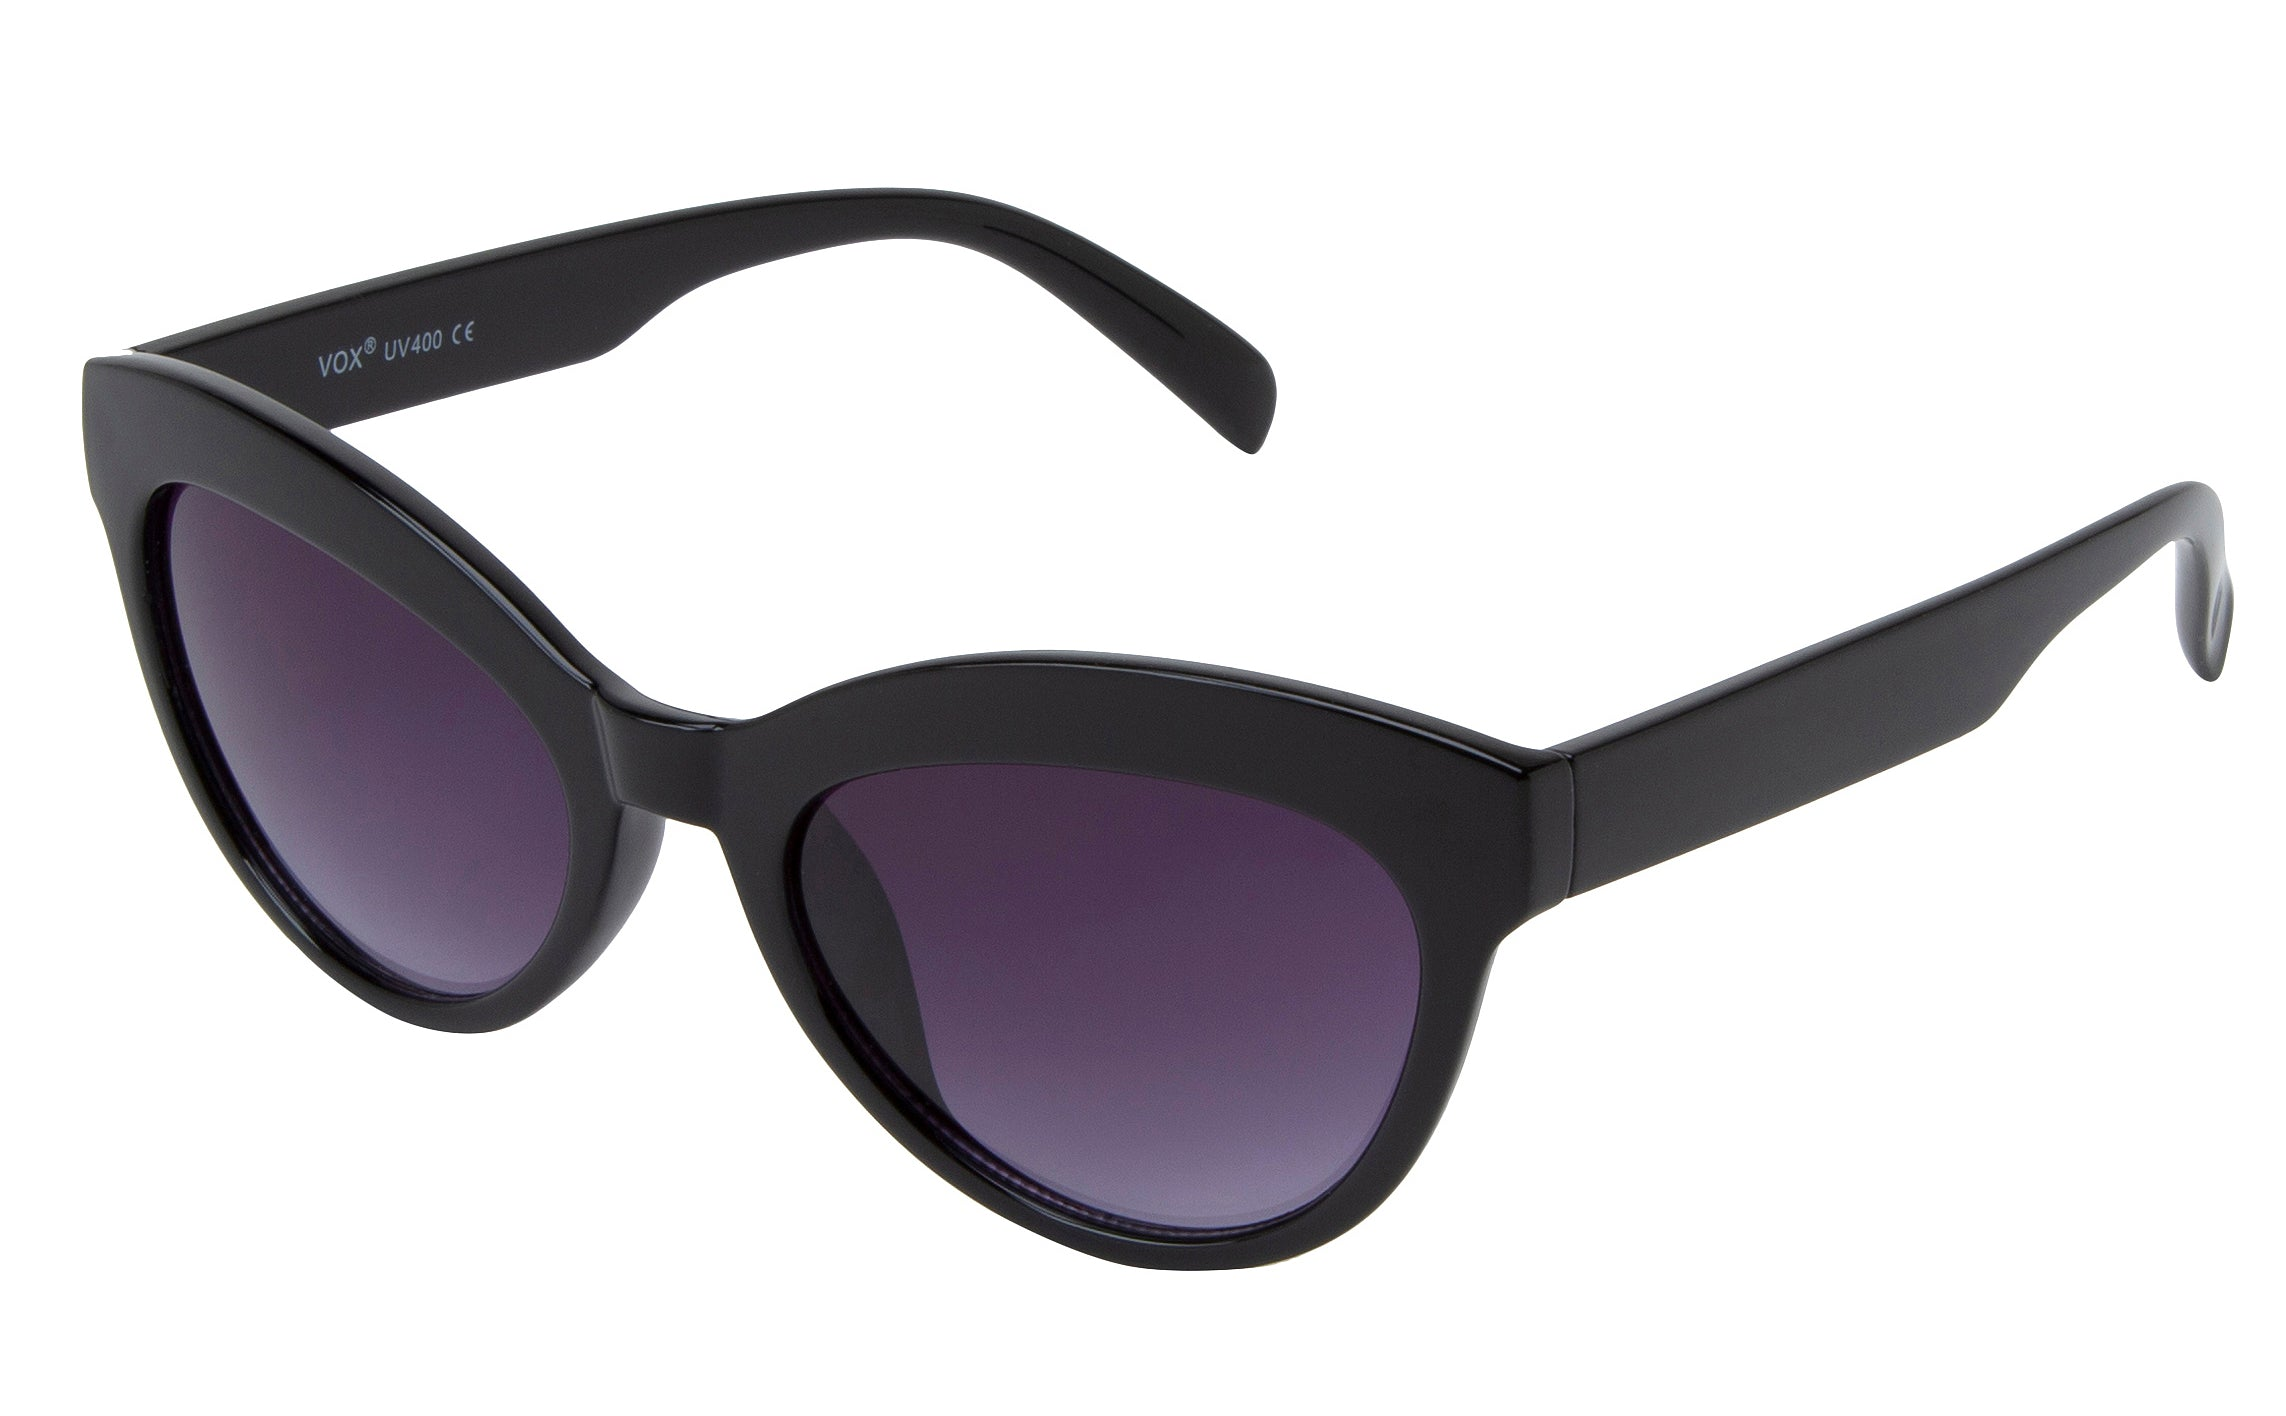 66115 - Vox Women's PC Fashion Sunglasses